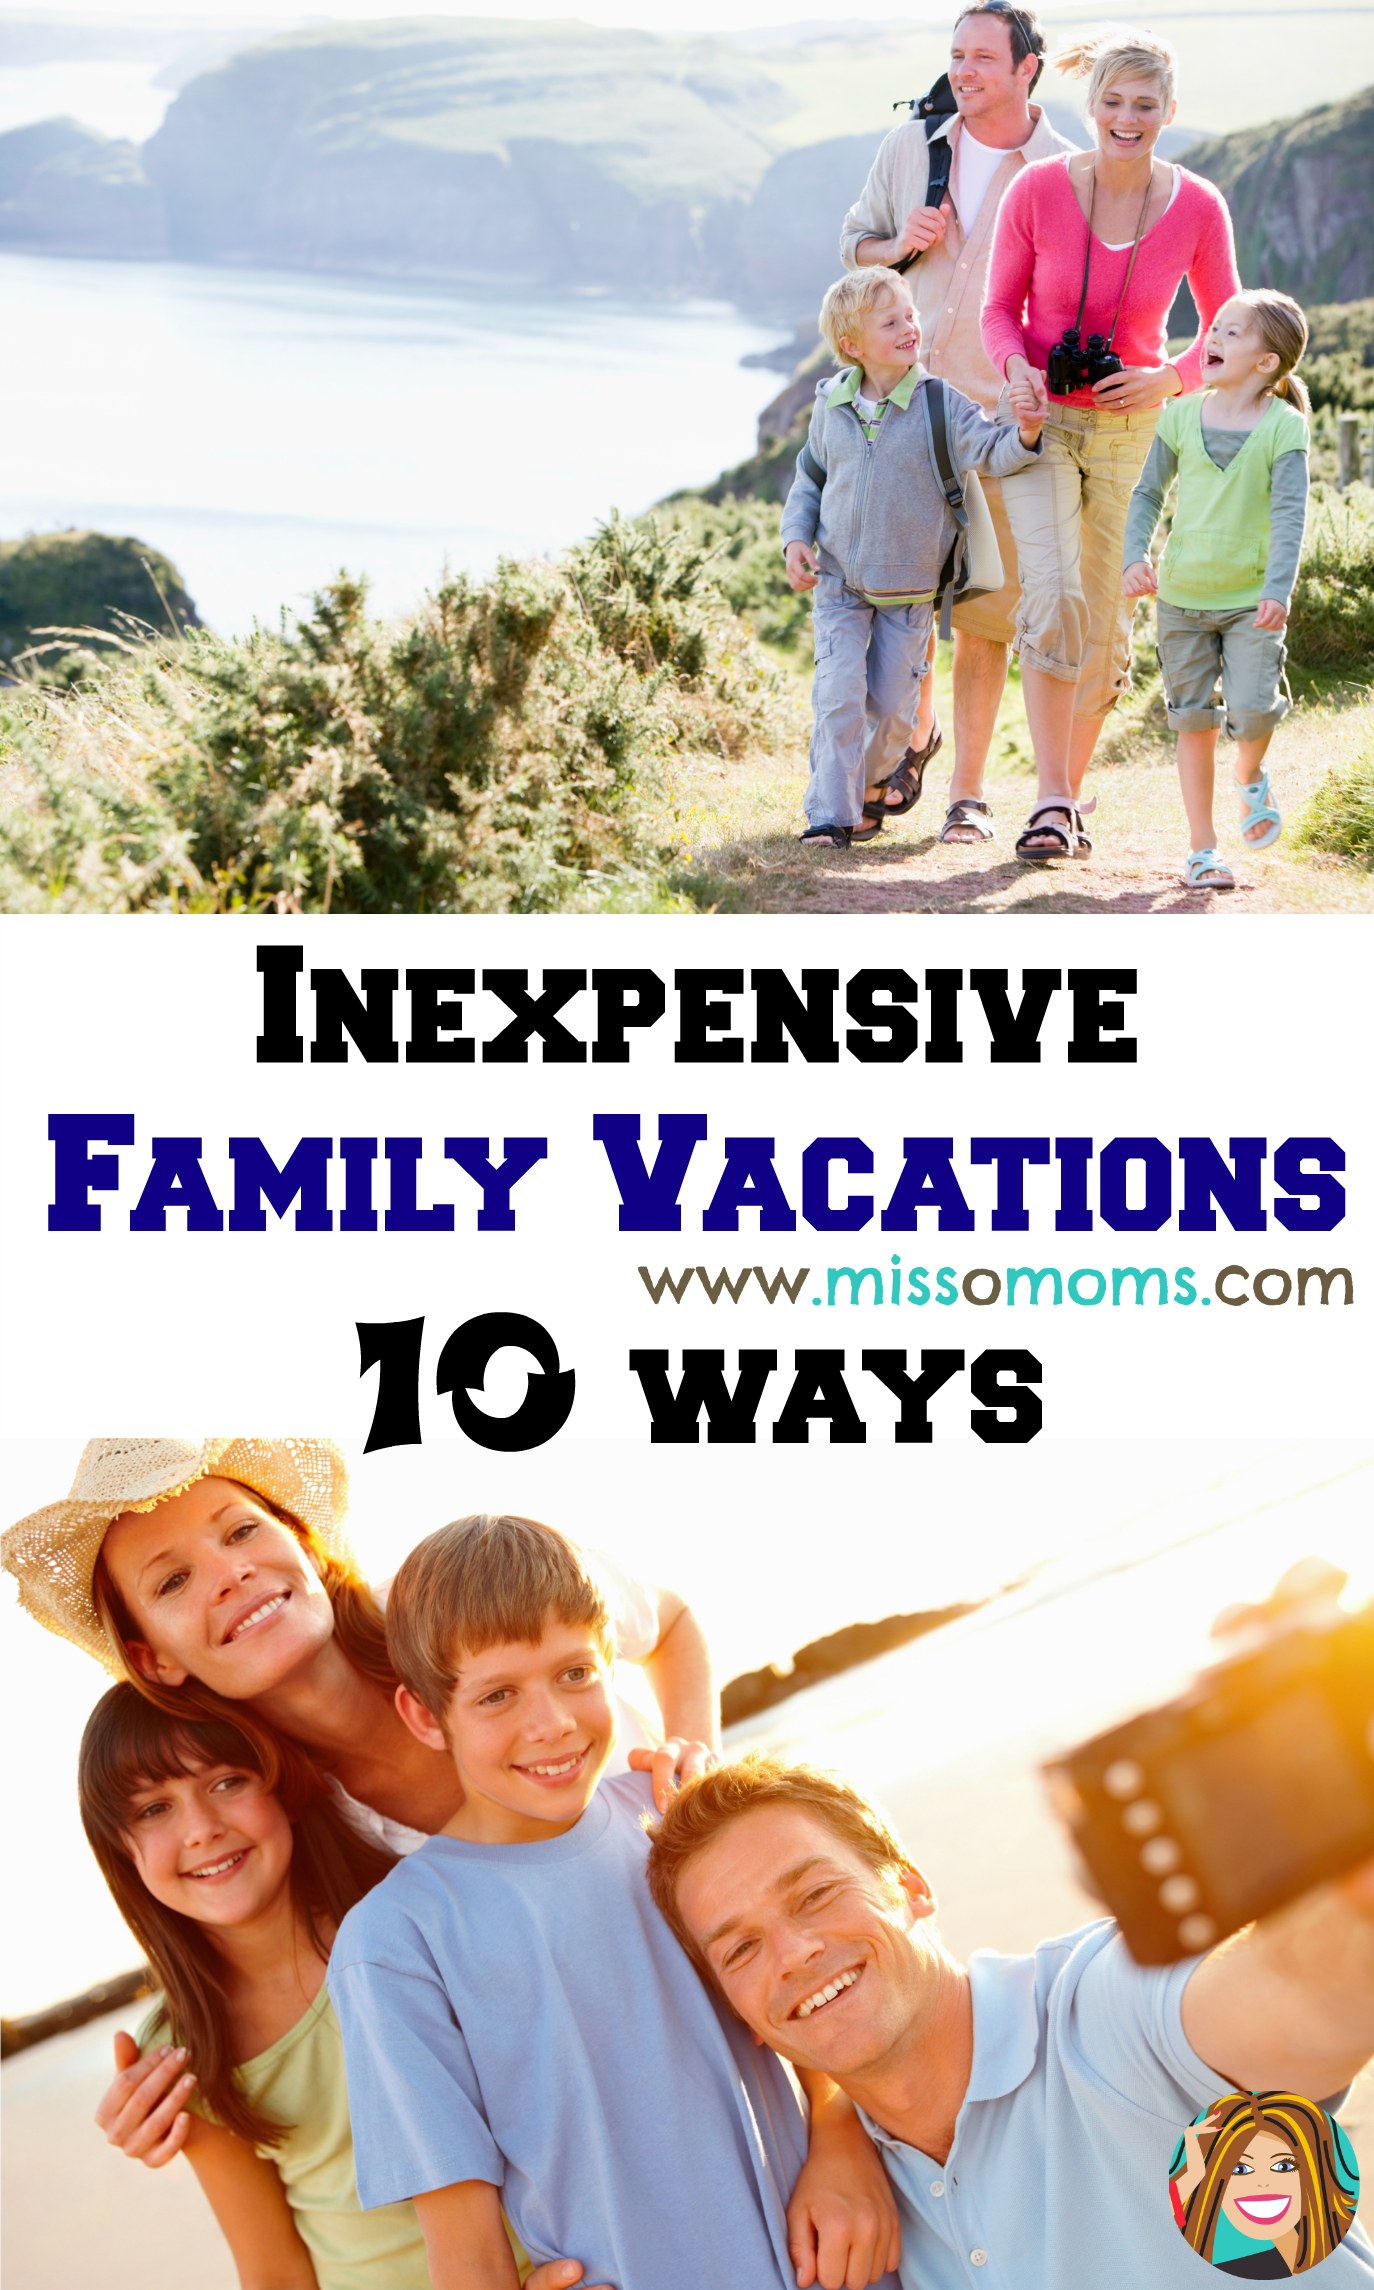 There Is A Chance To Actually Book Inexpensive Family Vacations If - Inexpensive trips